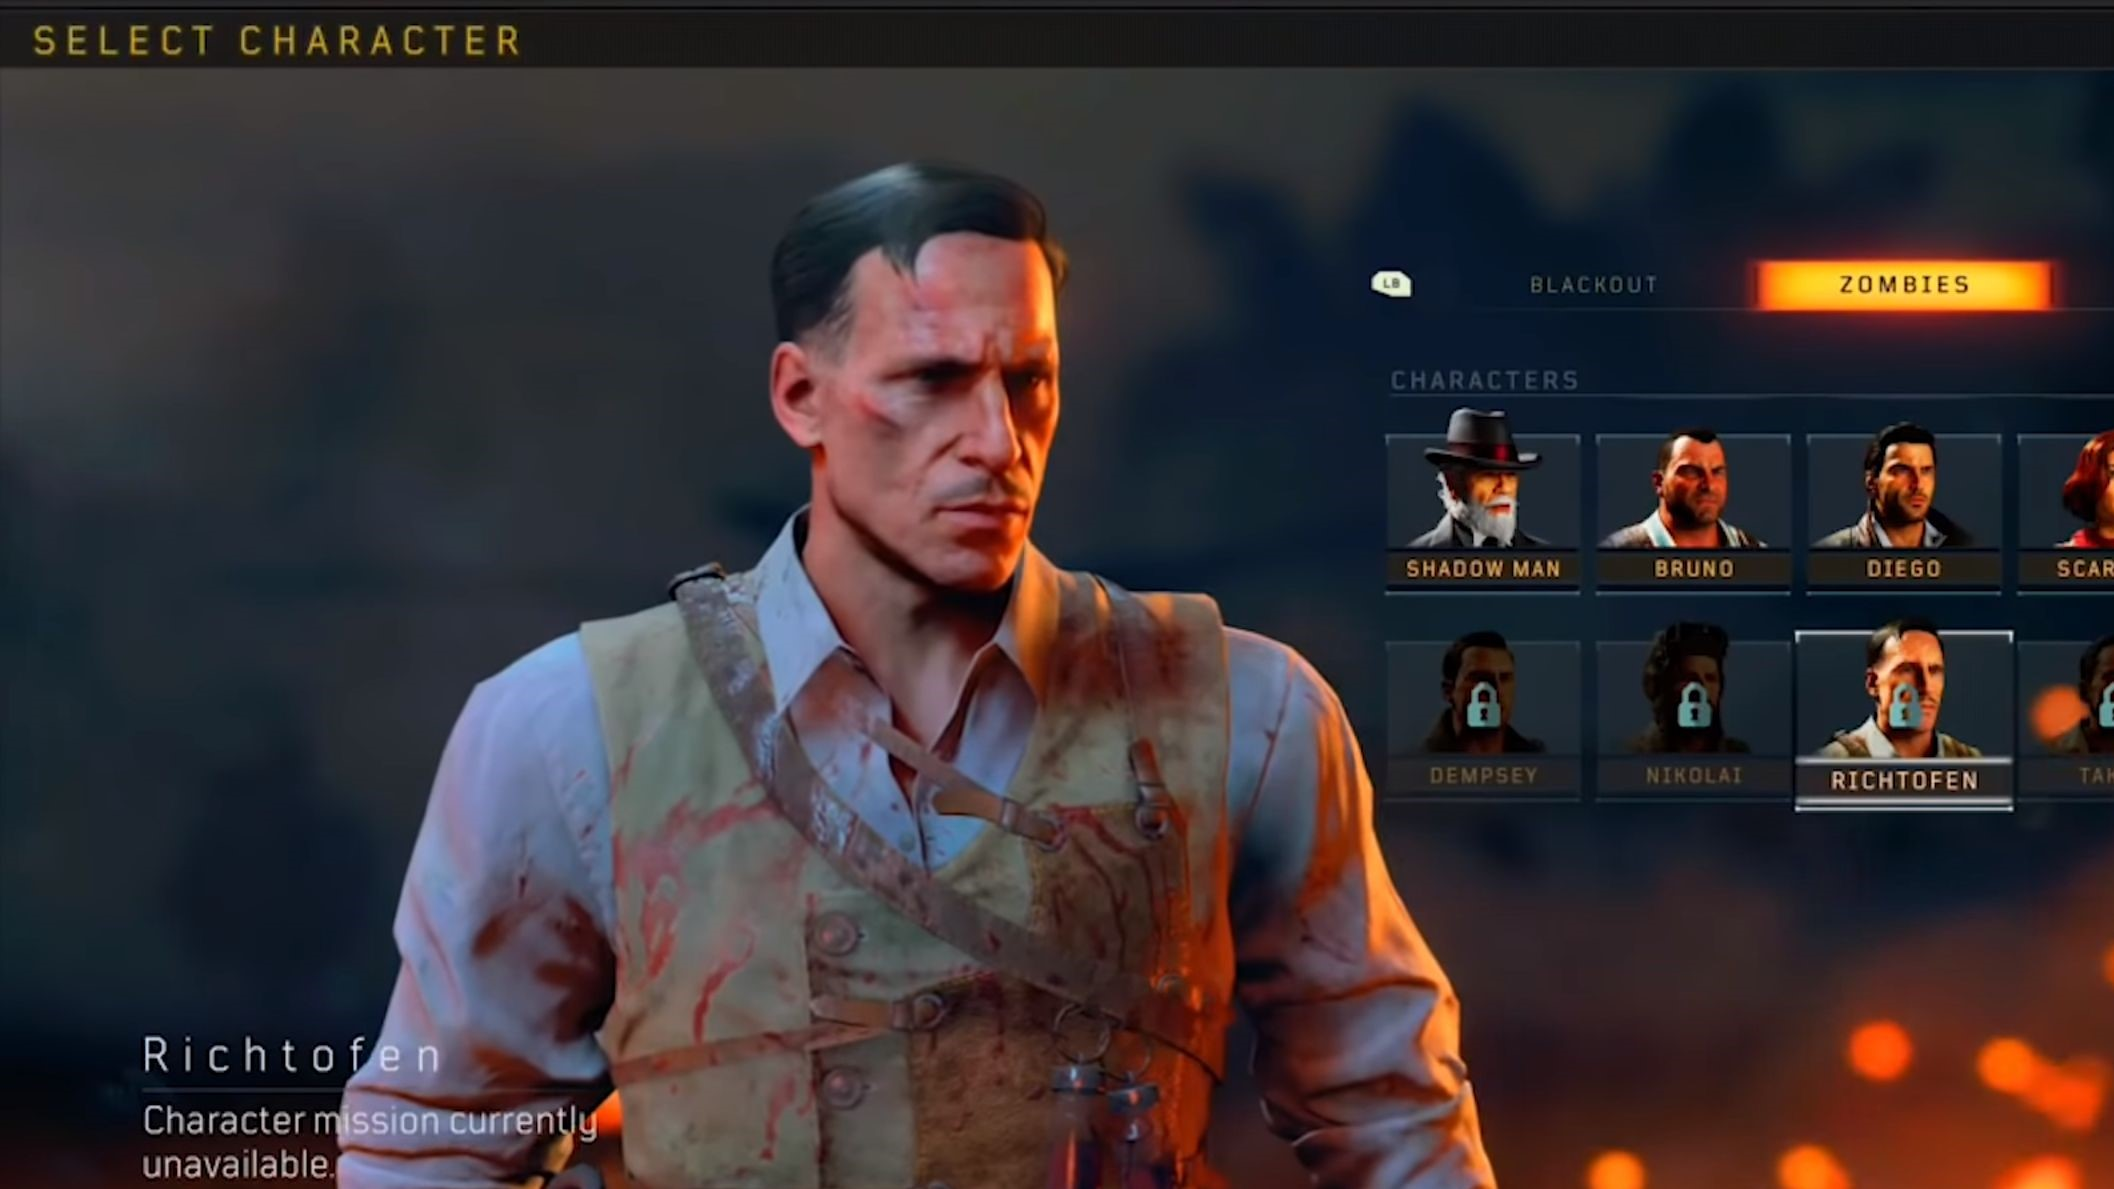 Blackout skins: how to unlock new characters for Black Ops 4